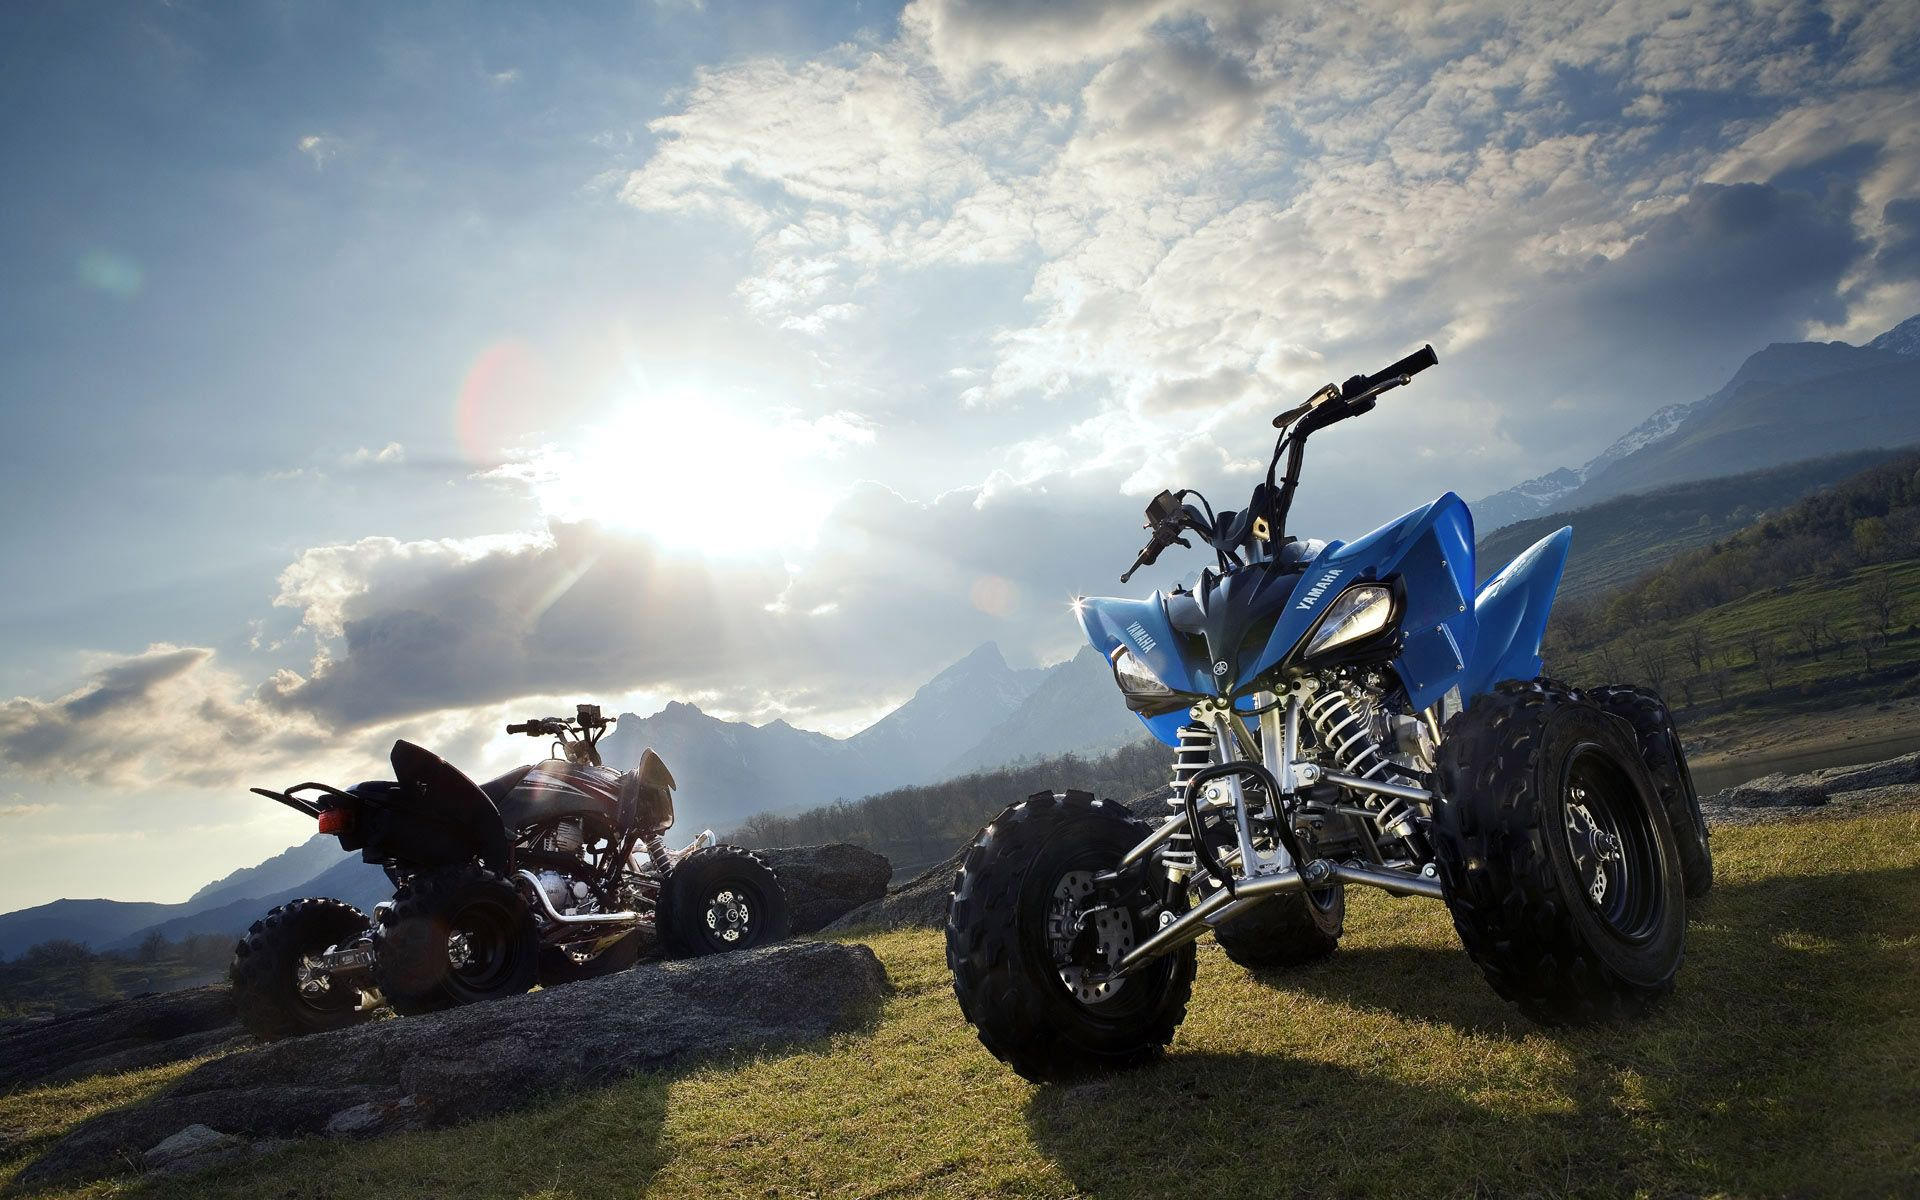 Yamaha Atv Wallpaper Hd X Yamaha Atv Quad Bike Motorcycle